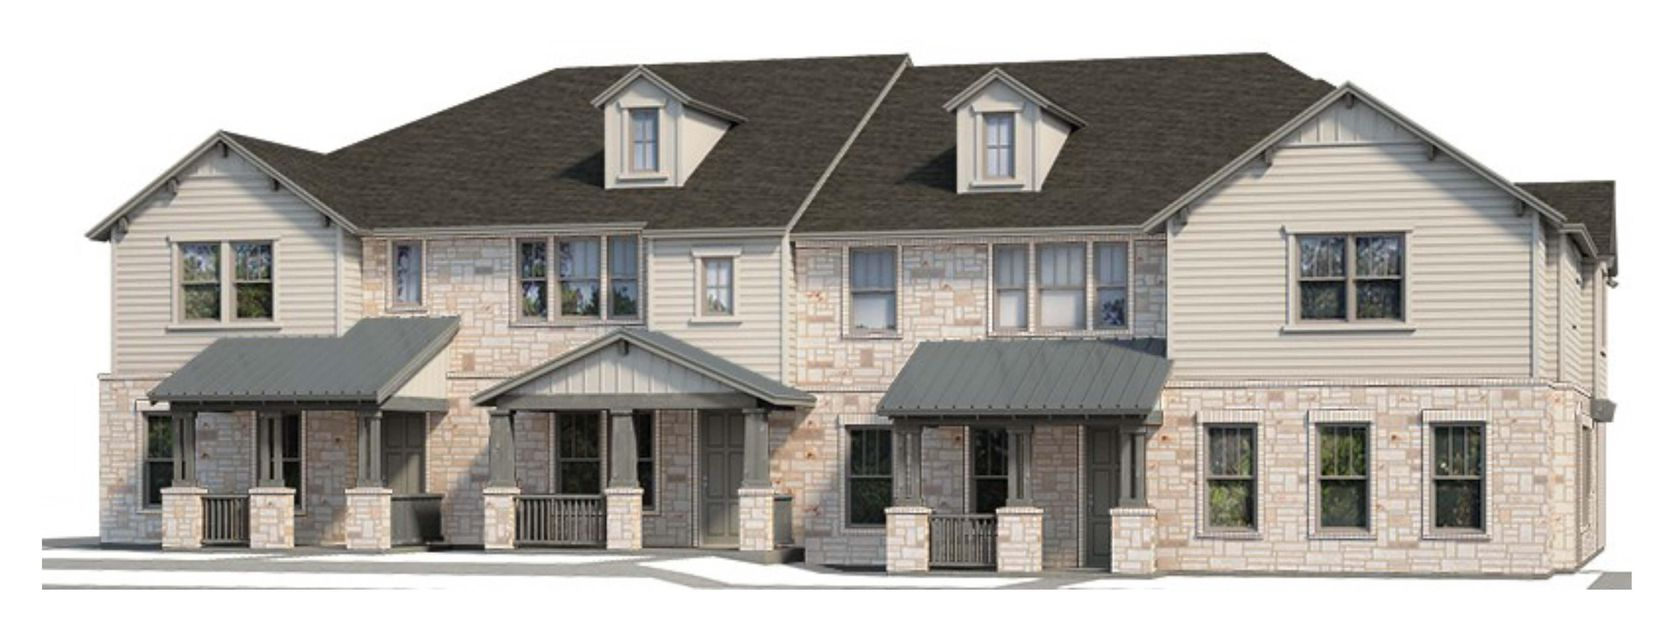 Plano-based builder CB Jeni Homes is building more than 90 townhouses next to one of North Richland Hills' new TexRail stations.